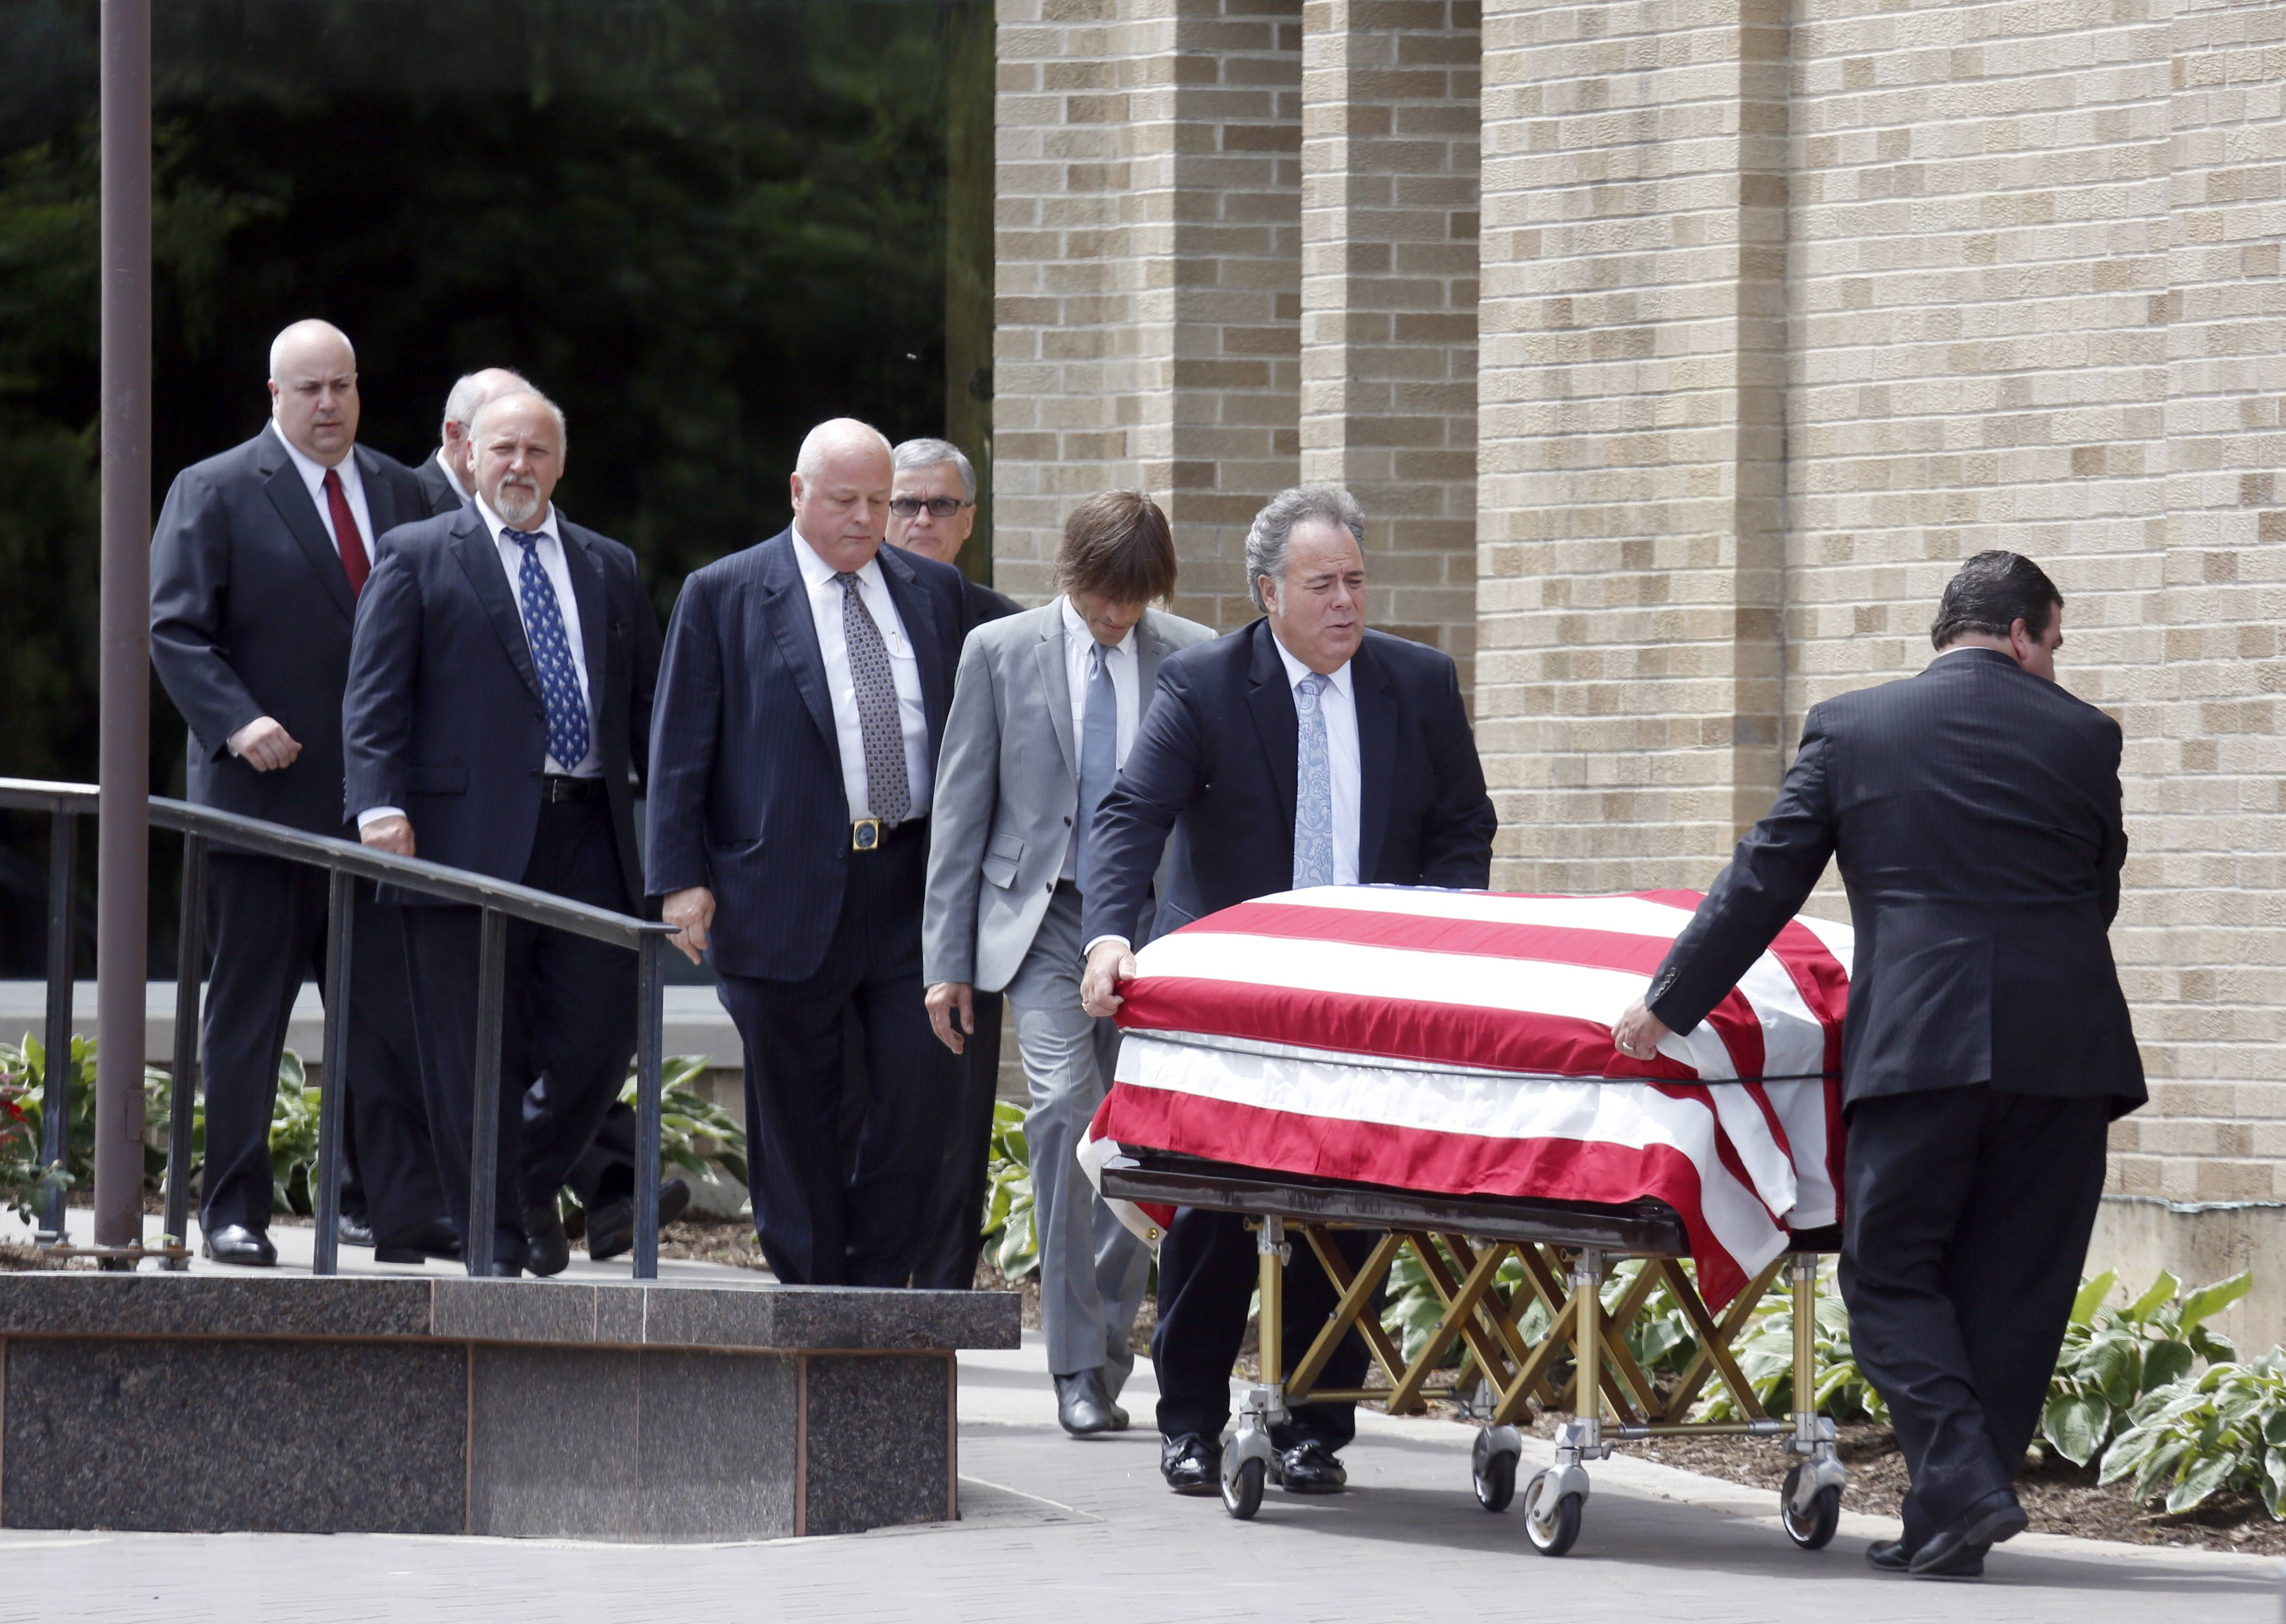 Pallbearers follow the casket of Jack Roeser after his funeral service Tuesday morning at St. Catherine of Siena Catholic Church in West Dundee. Roeser, 90, died Friday.